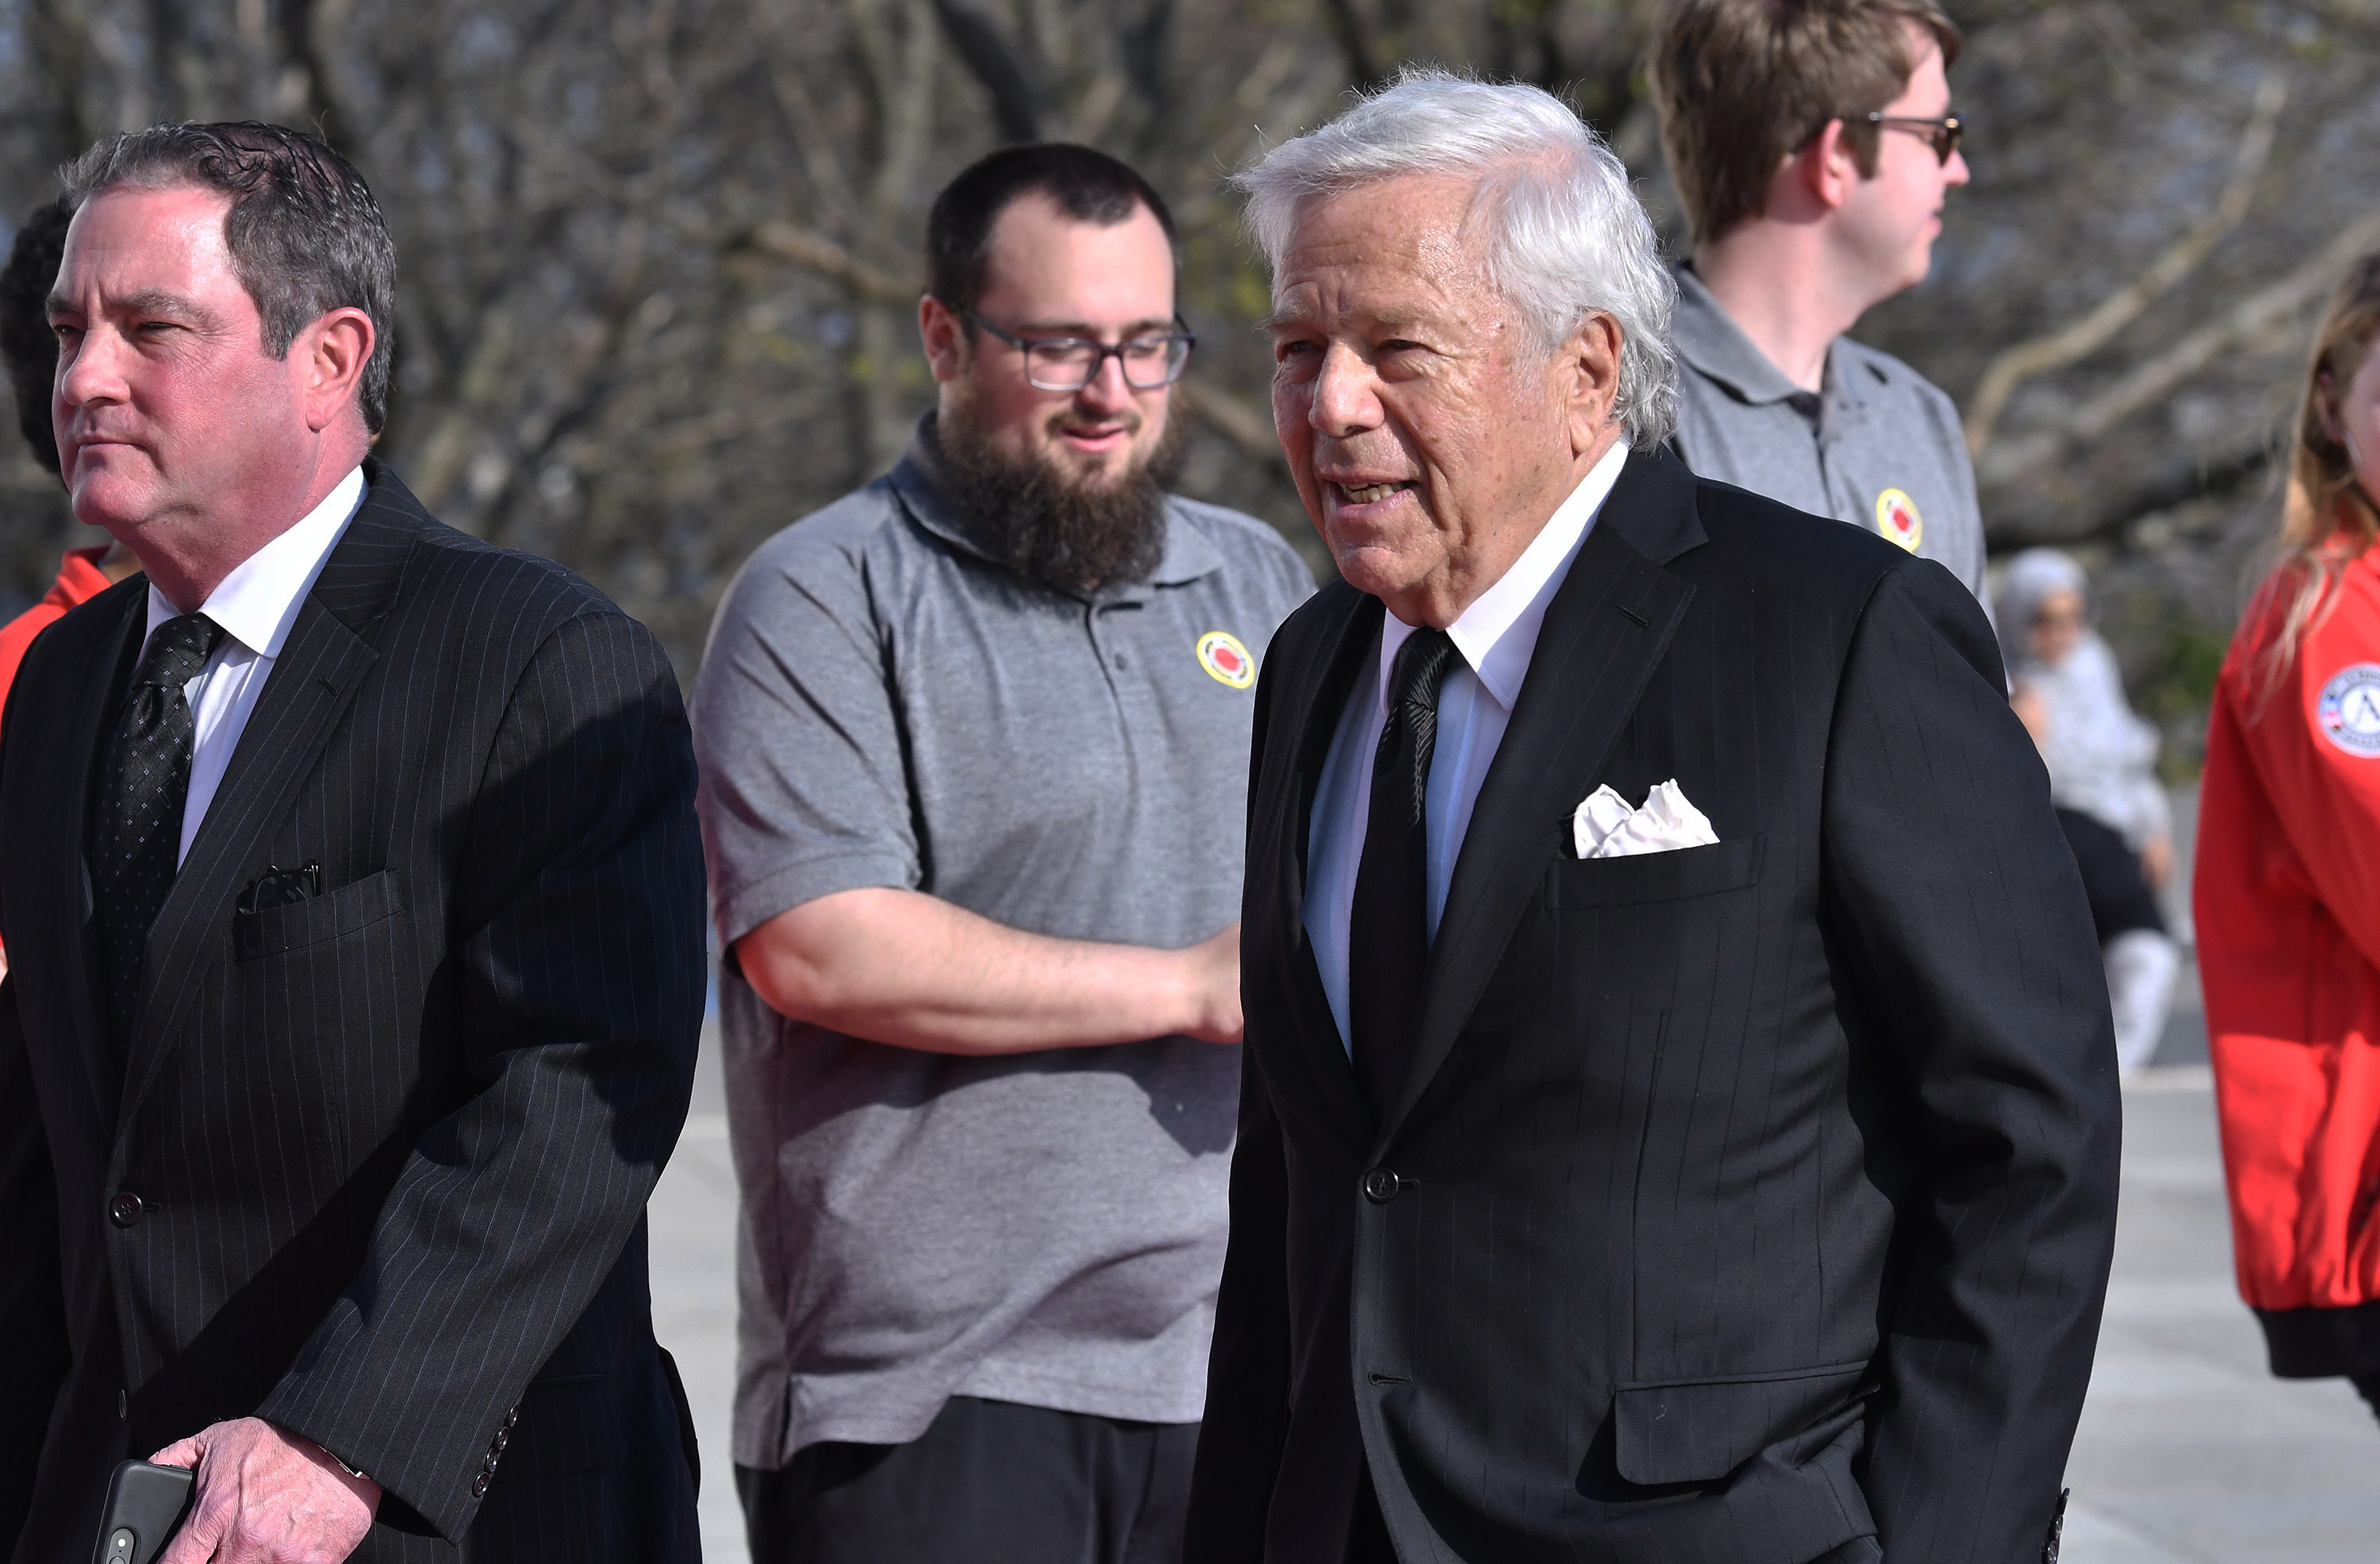 How Patriots owner Robert Kraft brought Jay-Z and NFL together